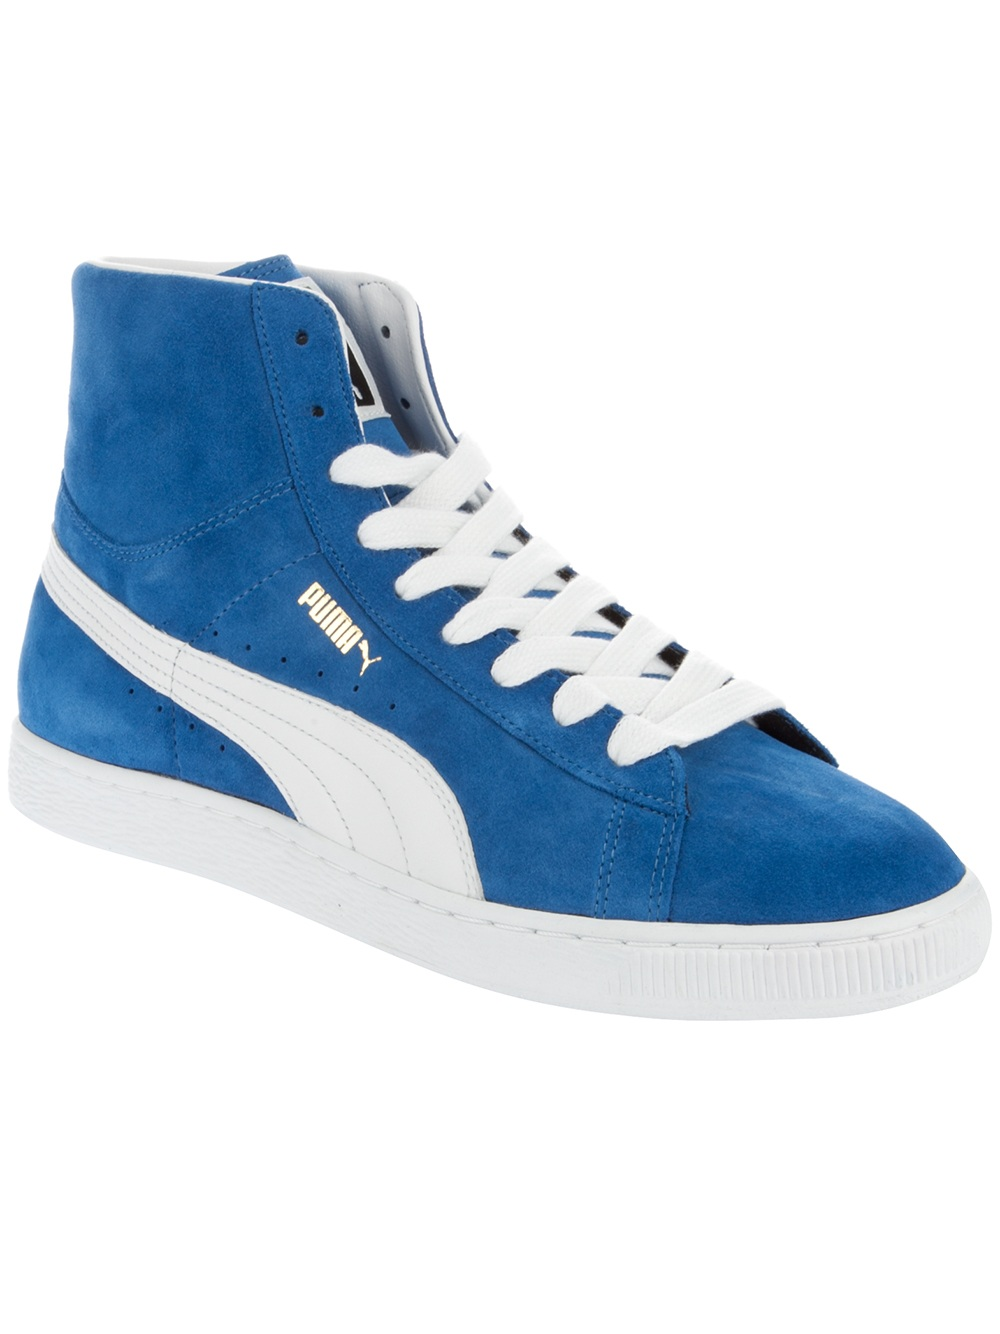 Find great deals on eBay for blue high top shoes. Shop with confidence.